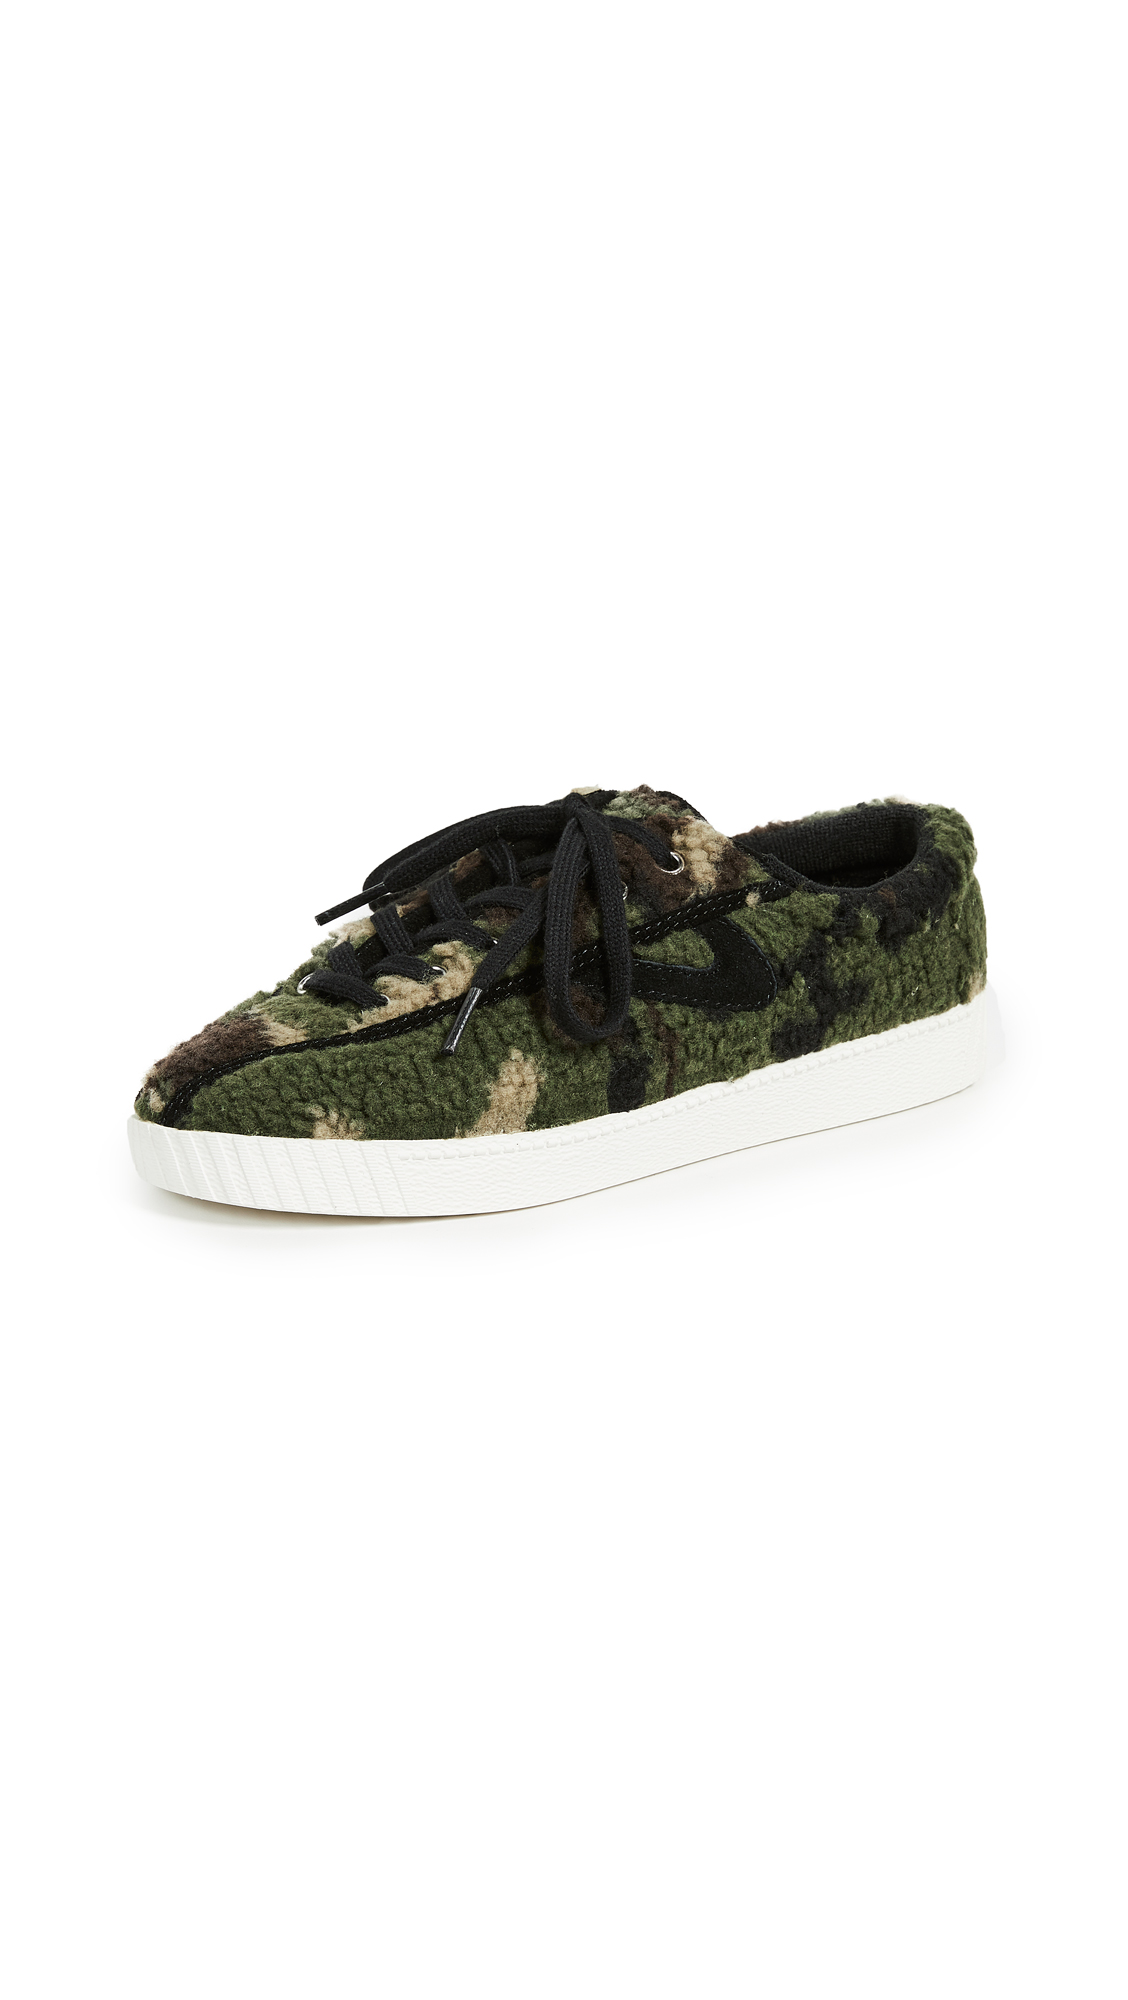 Tretorn Nylite Sherpa Lace Up Sneakers